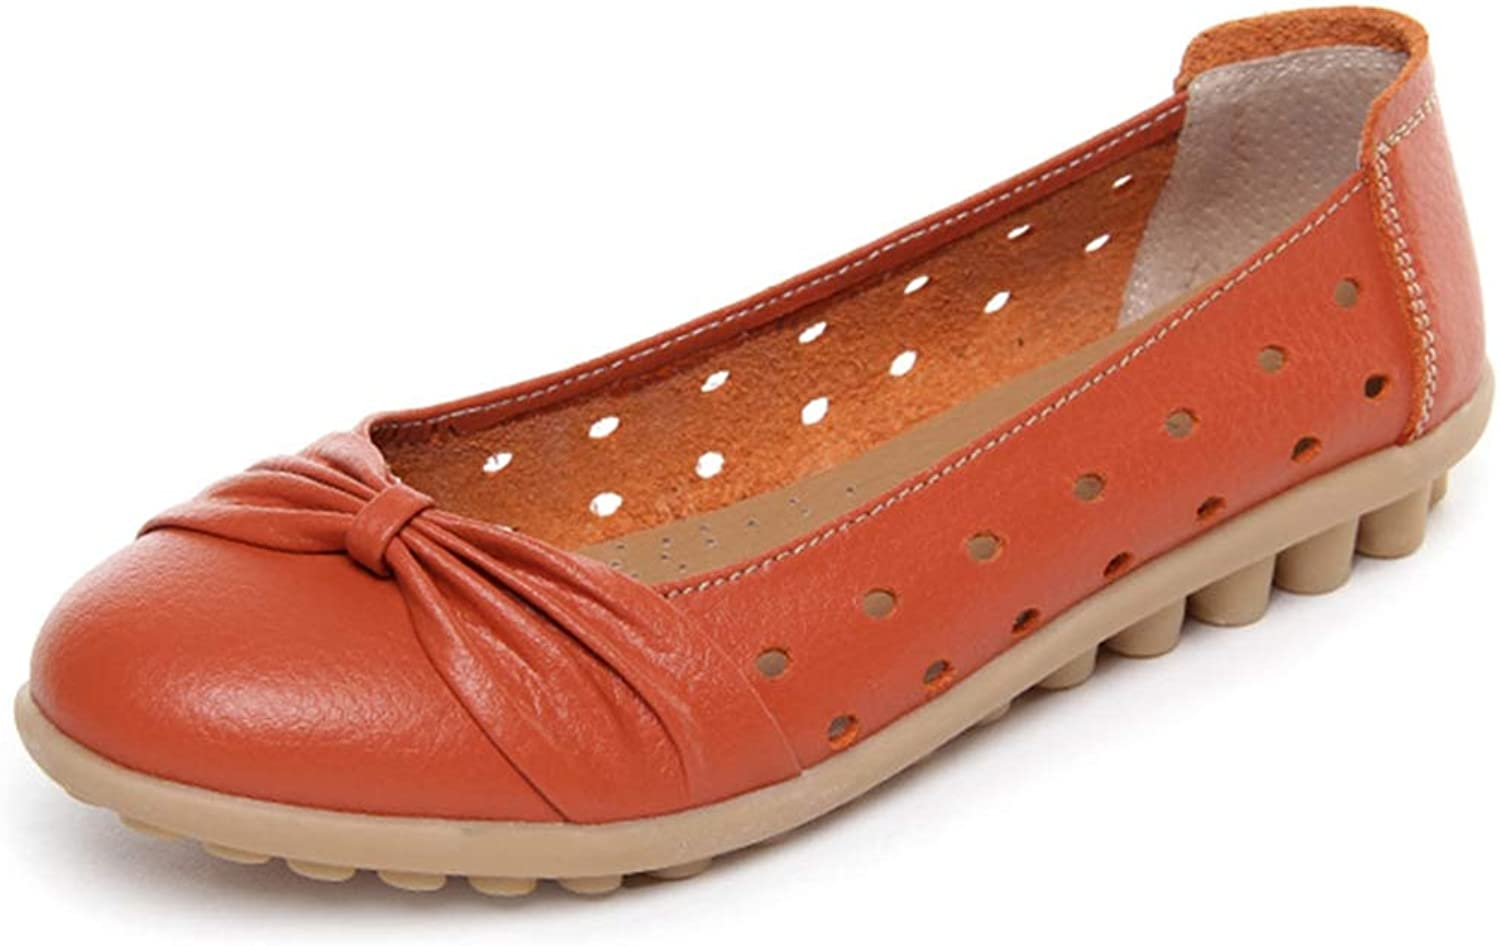 Women Ballet Flats Genuine Leather Loafers shoes Slip On Flat Heel shoes